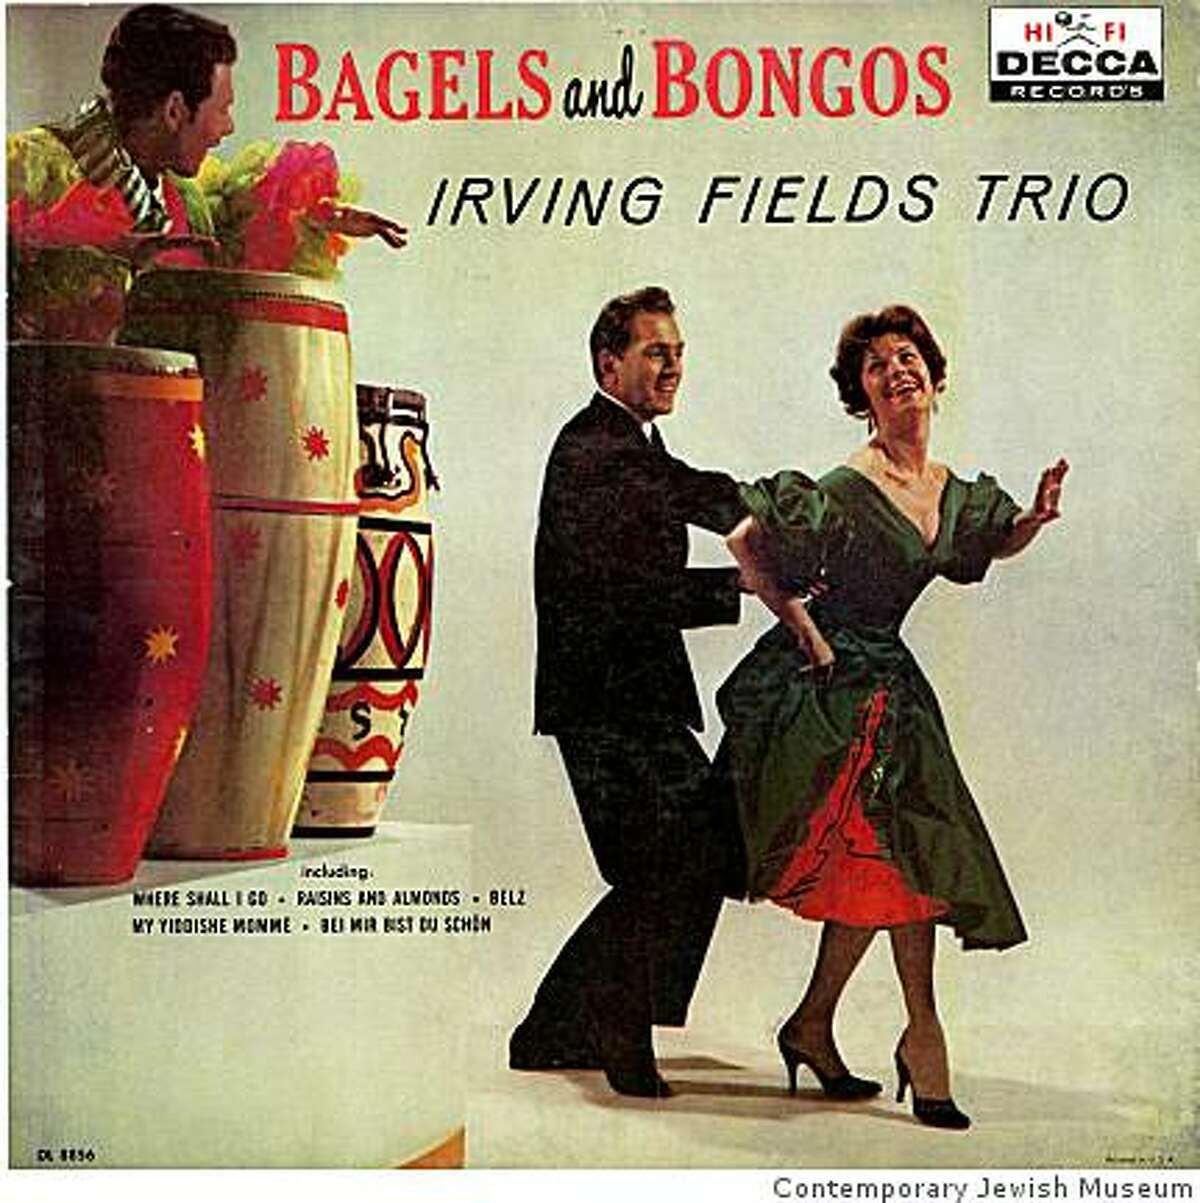 """The Irving Fields Trio's """"Bagels and Bongs"""" is part of the Contemporary Jewish Museum's exhibition """"Jews on Vinyl: And You Shall Know Us by the Trail of Our Vinyl"""" Feb. 6-June 9, 2009."""